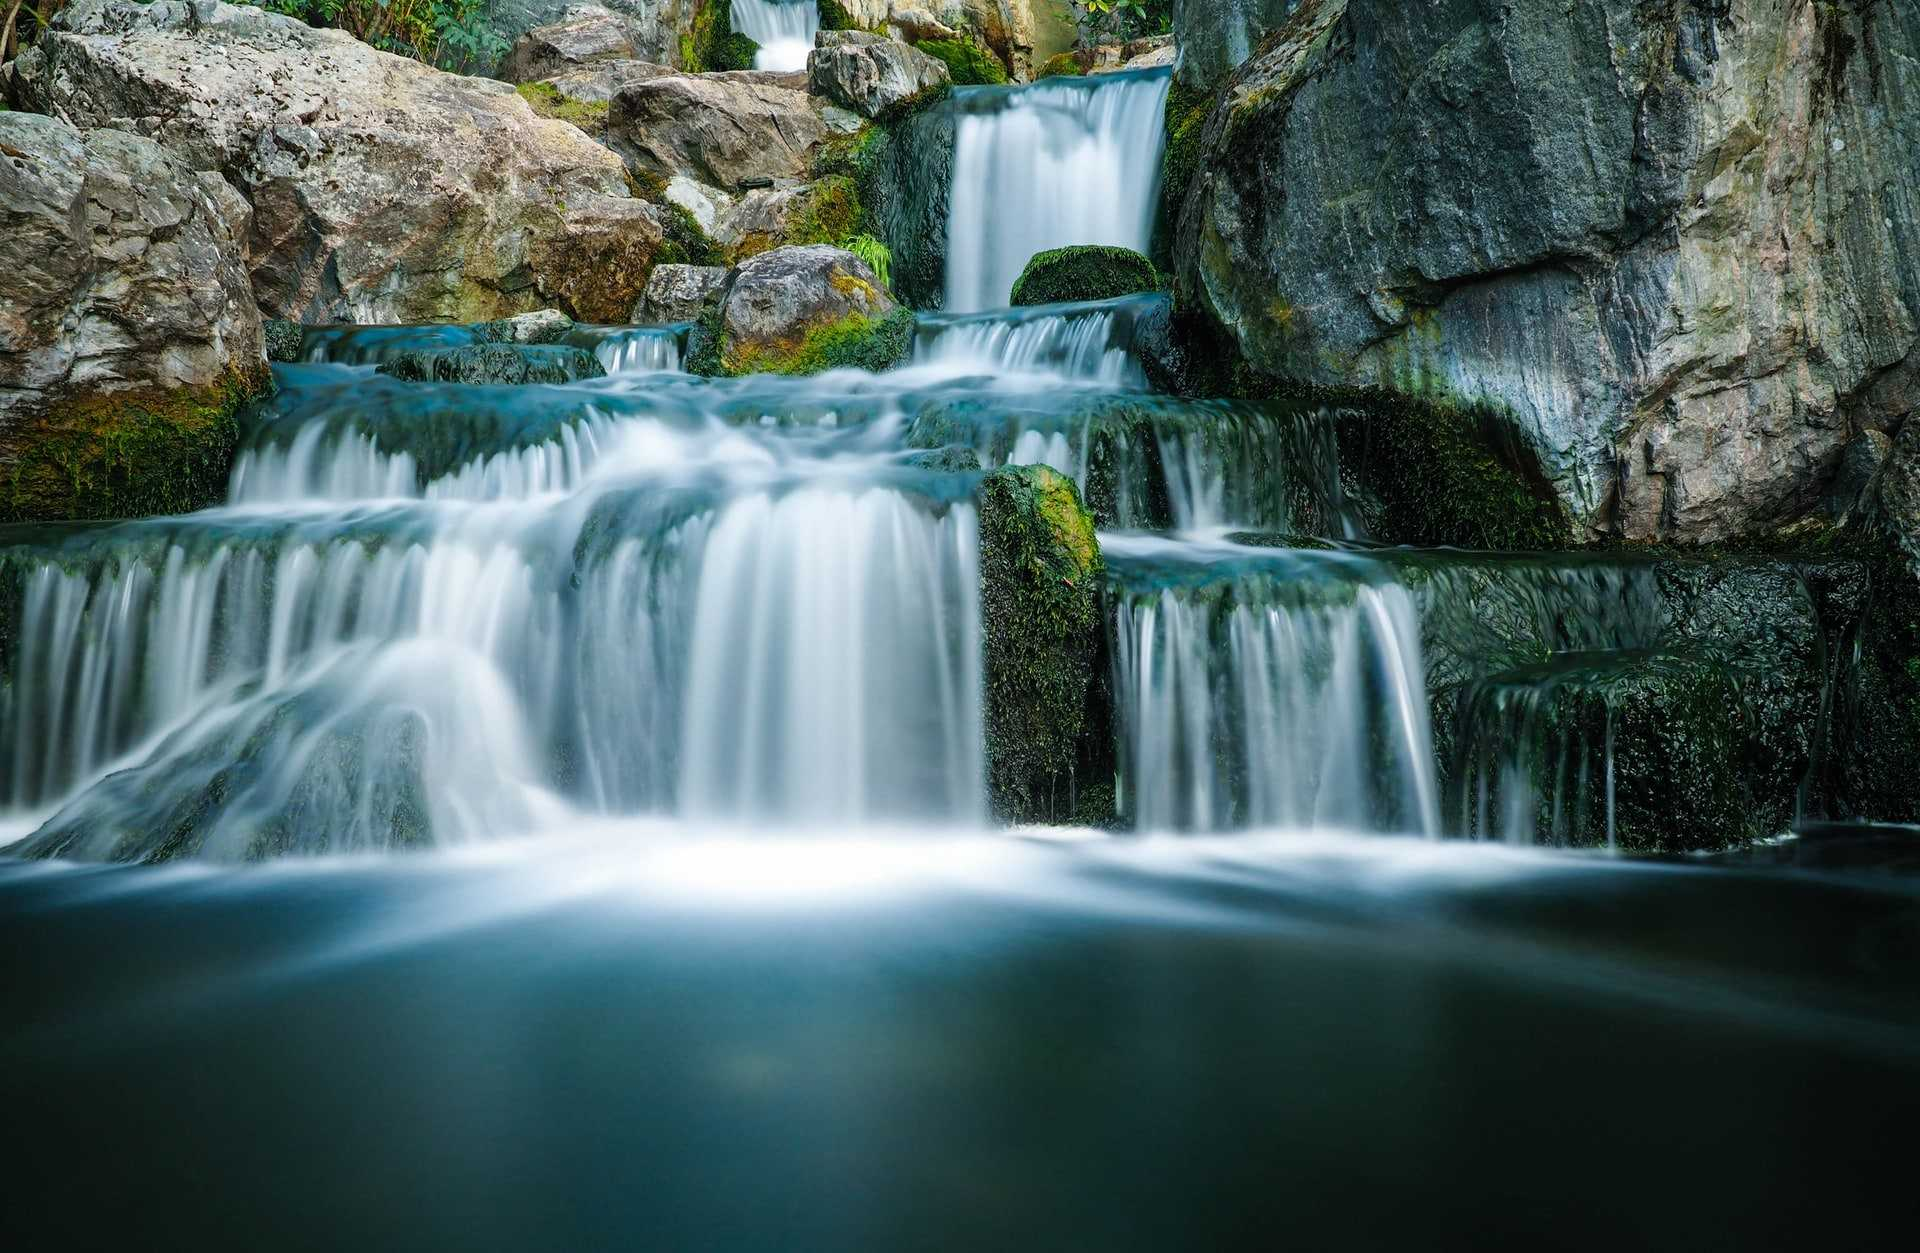 small-waterfall-between-rocks-at-kyoto-gardens-in-holland-park-most-beautiful-parks-in-london